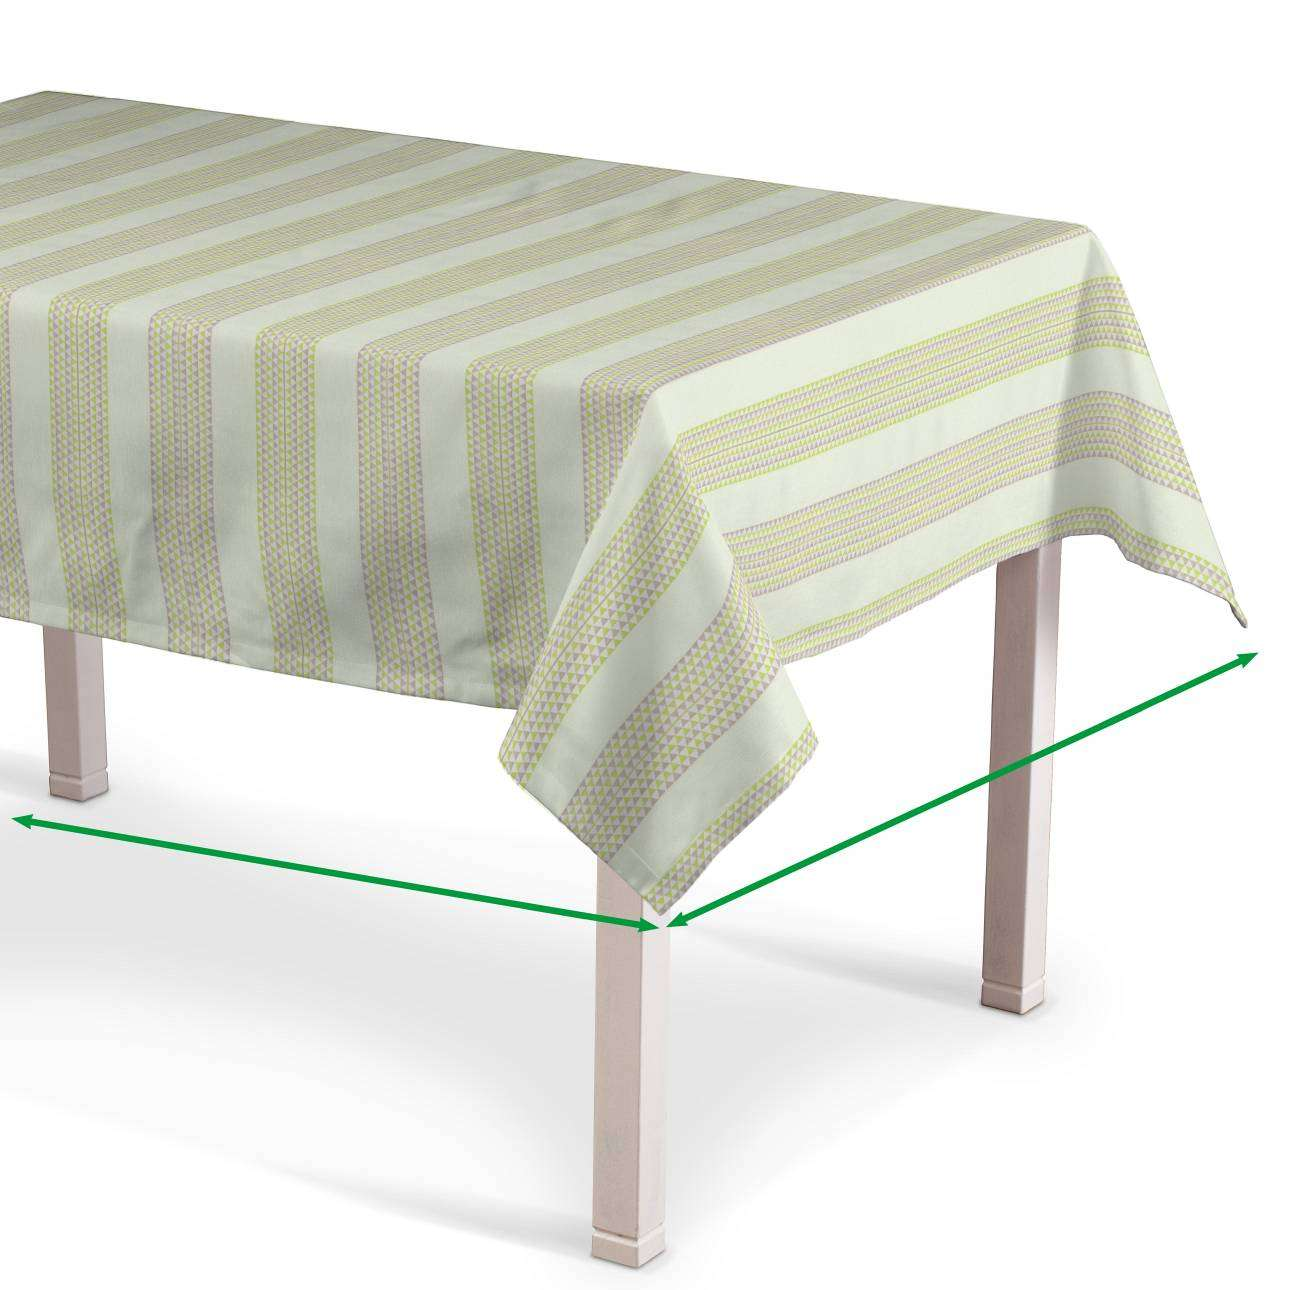 Rectangular tablecloth in collection Rustica, fabric: 140-35